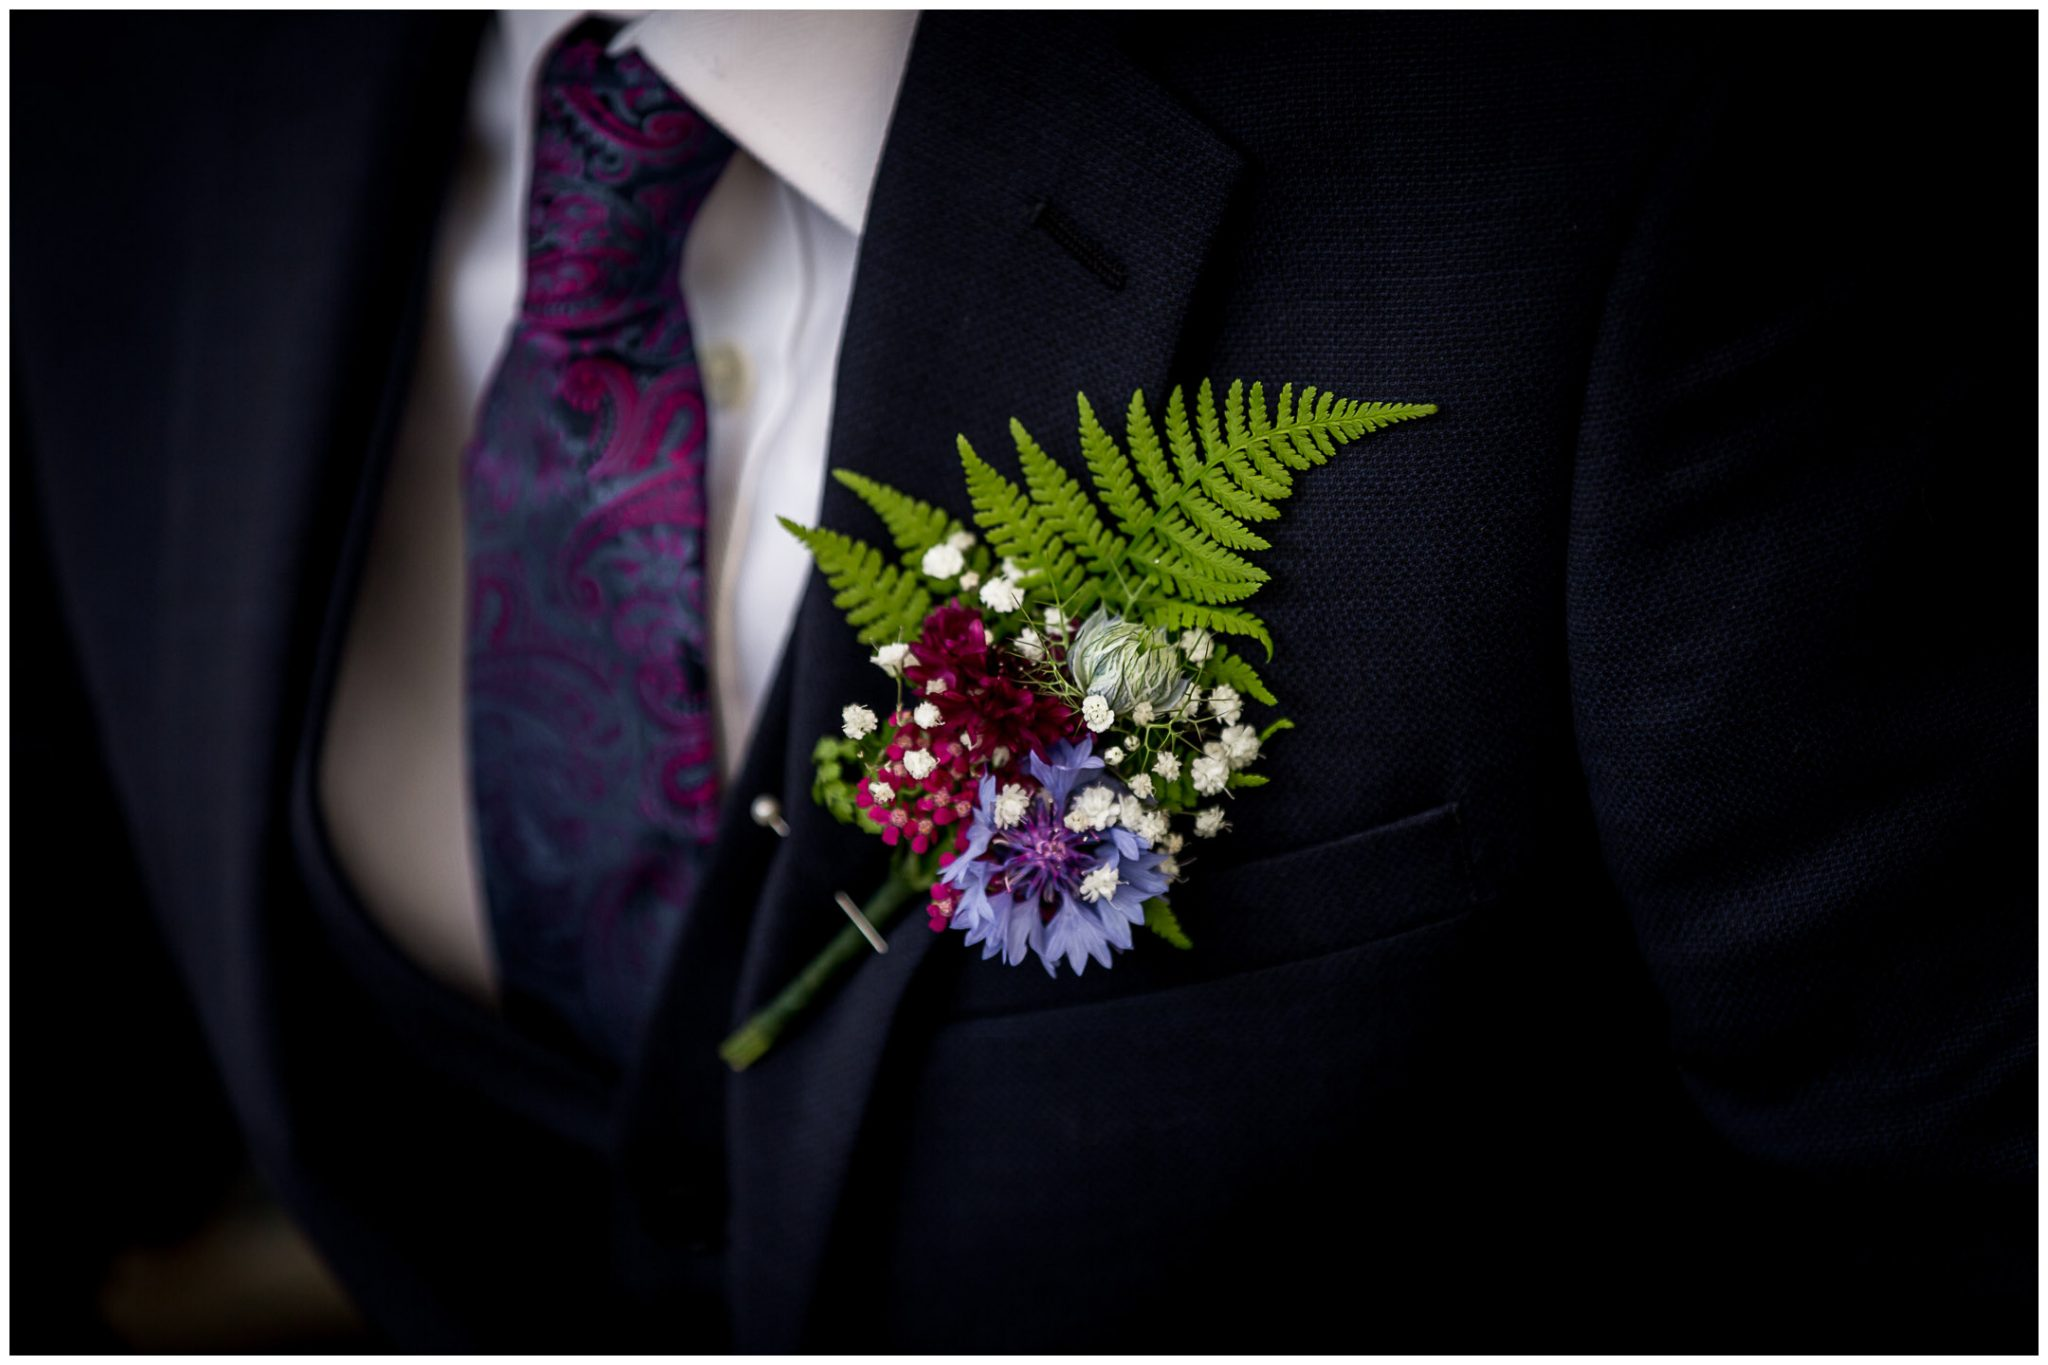 The groom's buttonhole